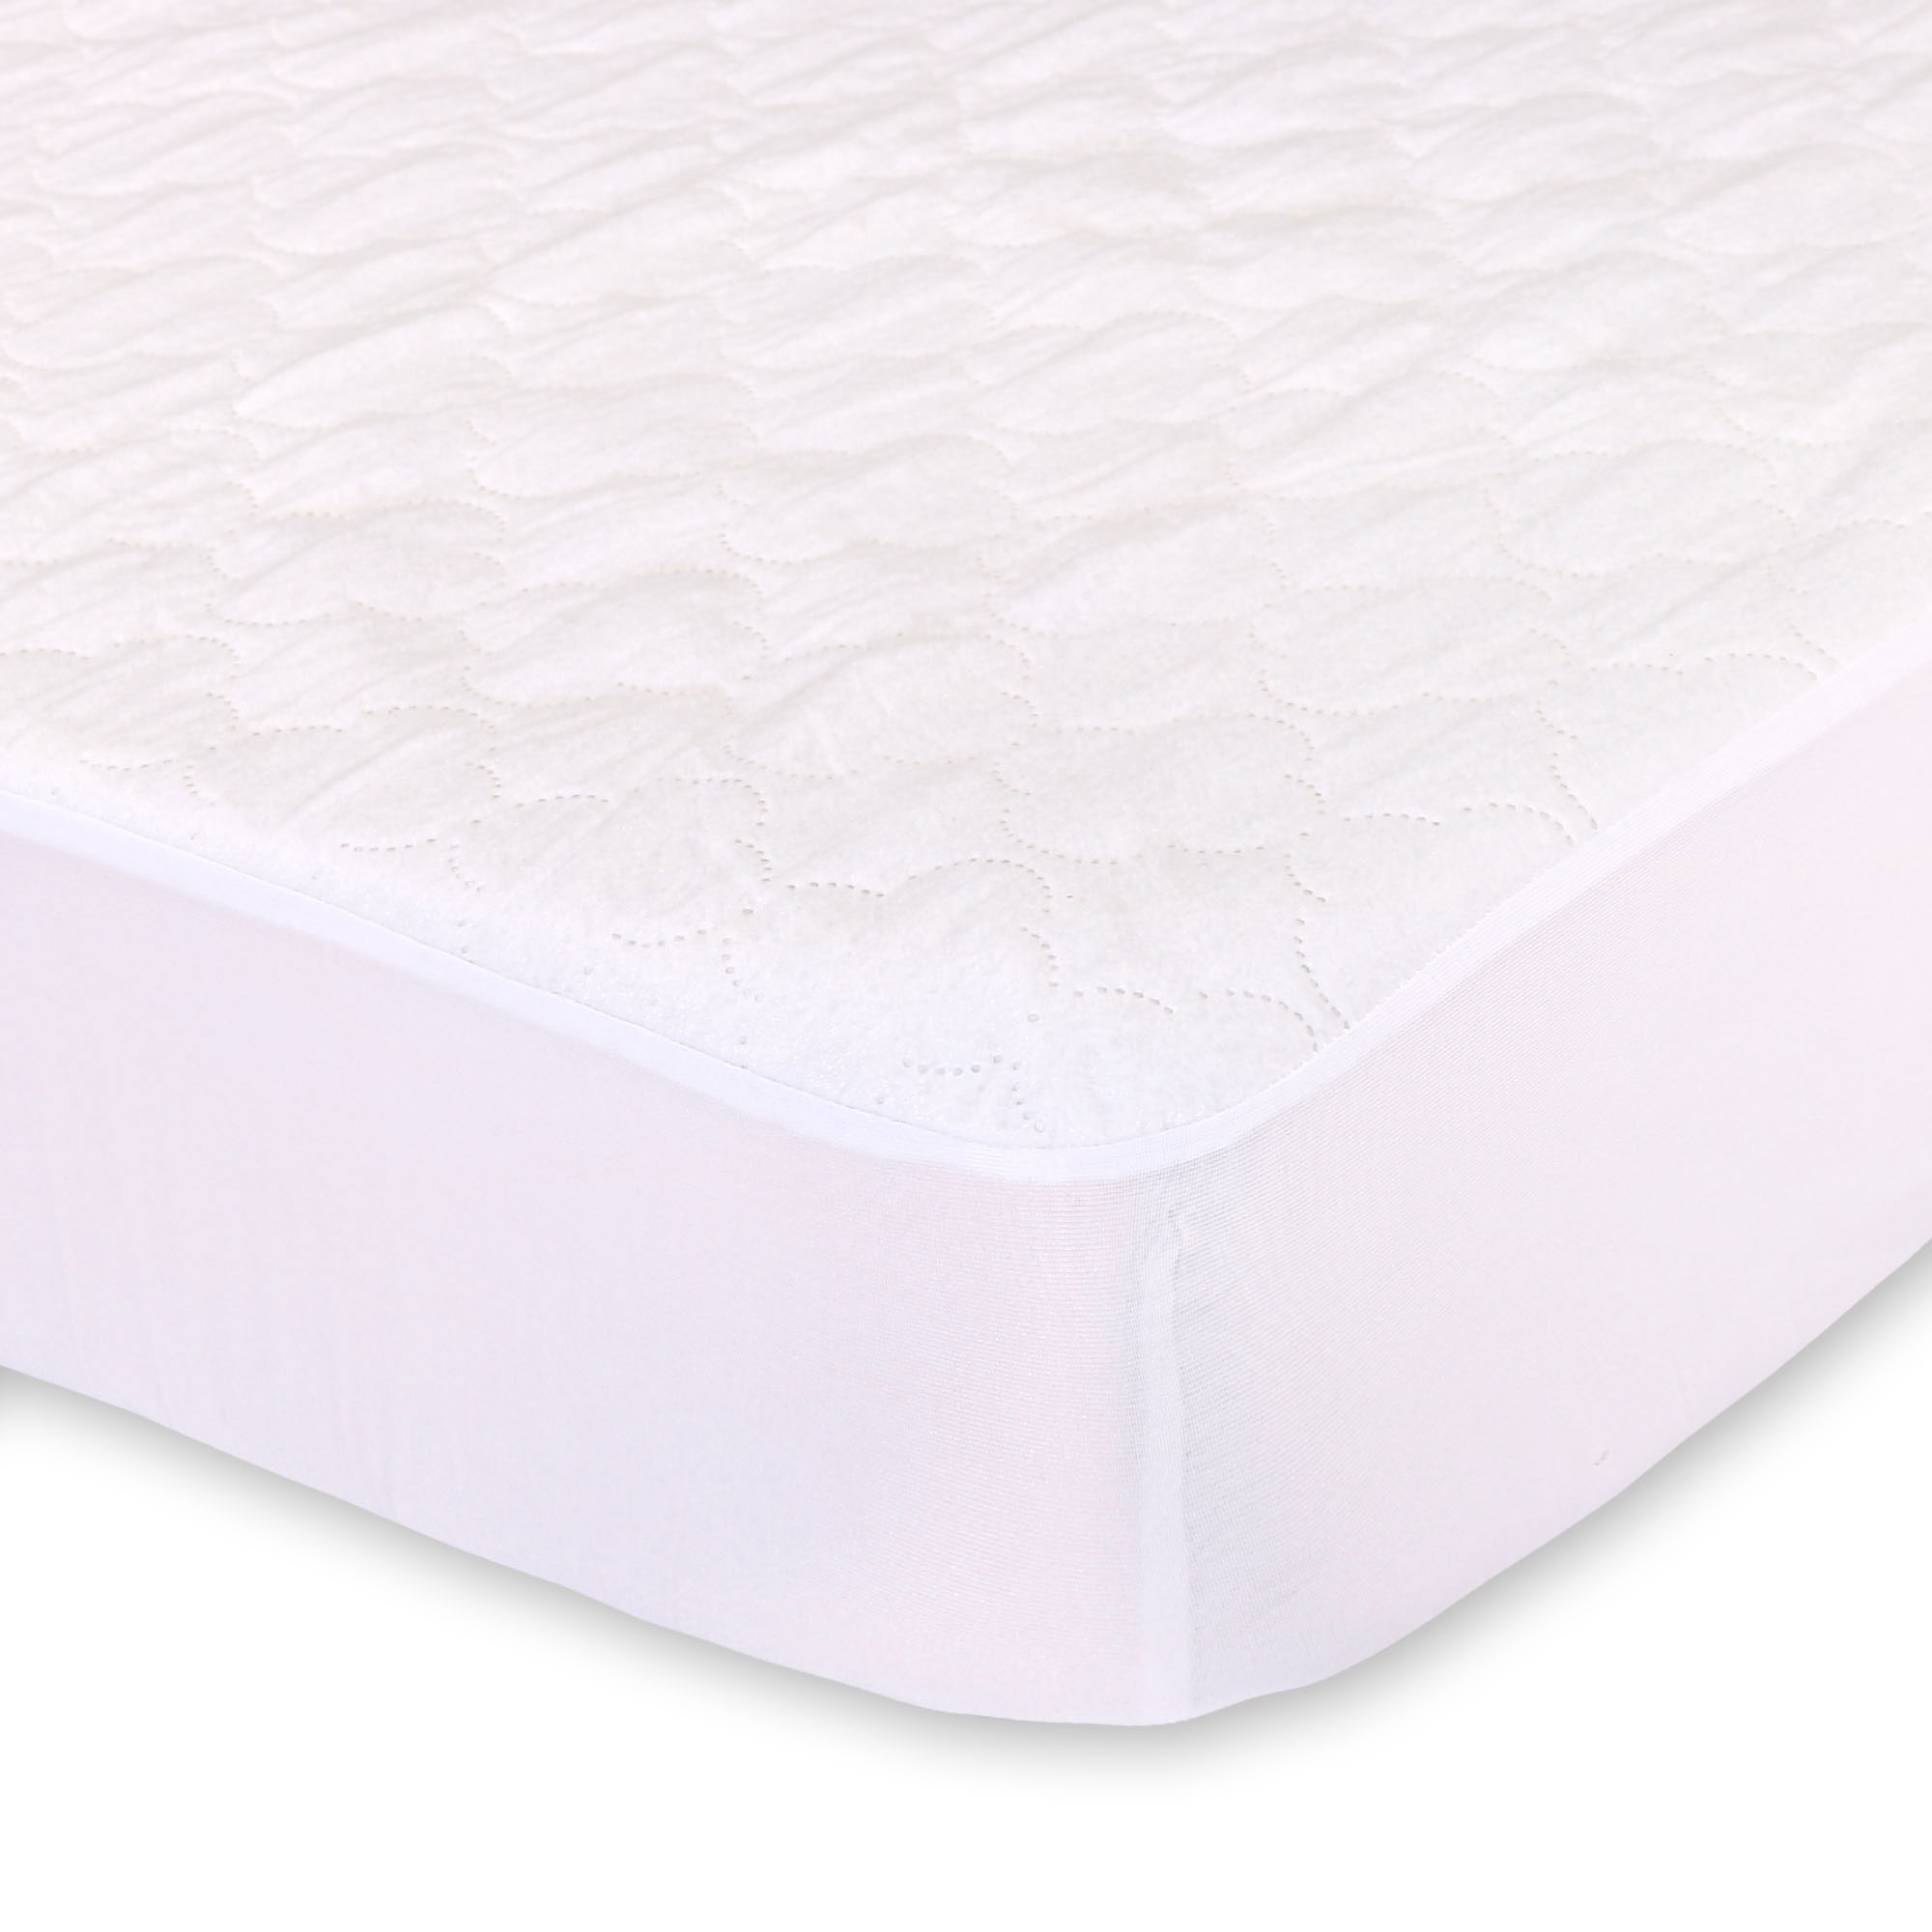 on sale a9c1f 5e1ef Toddler Bed Waterproof Mattress Protector